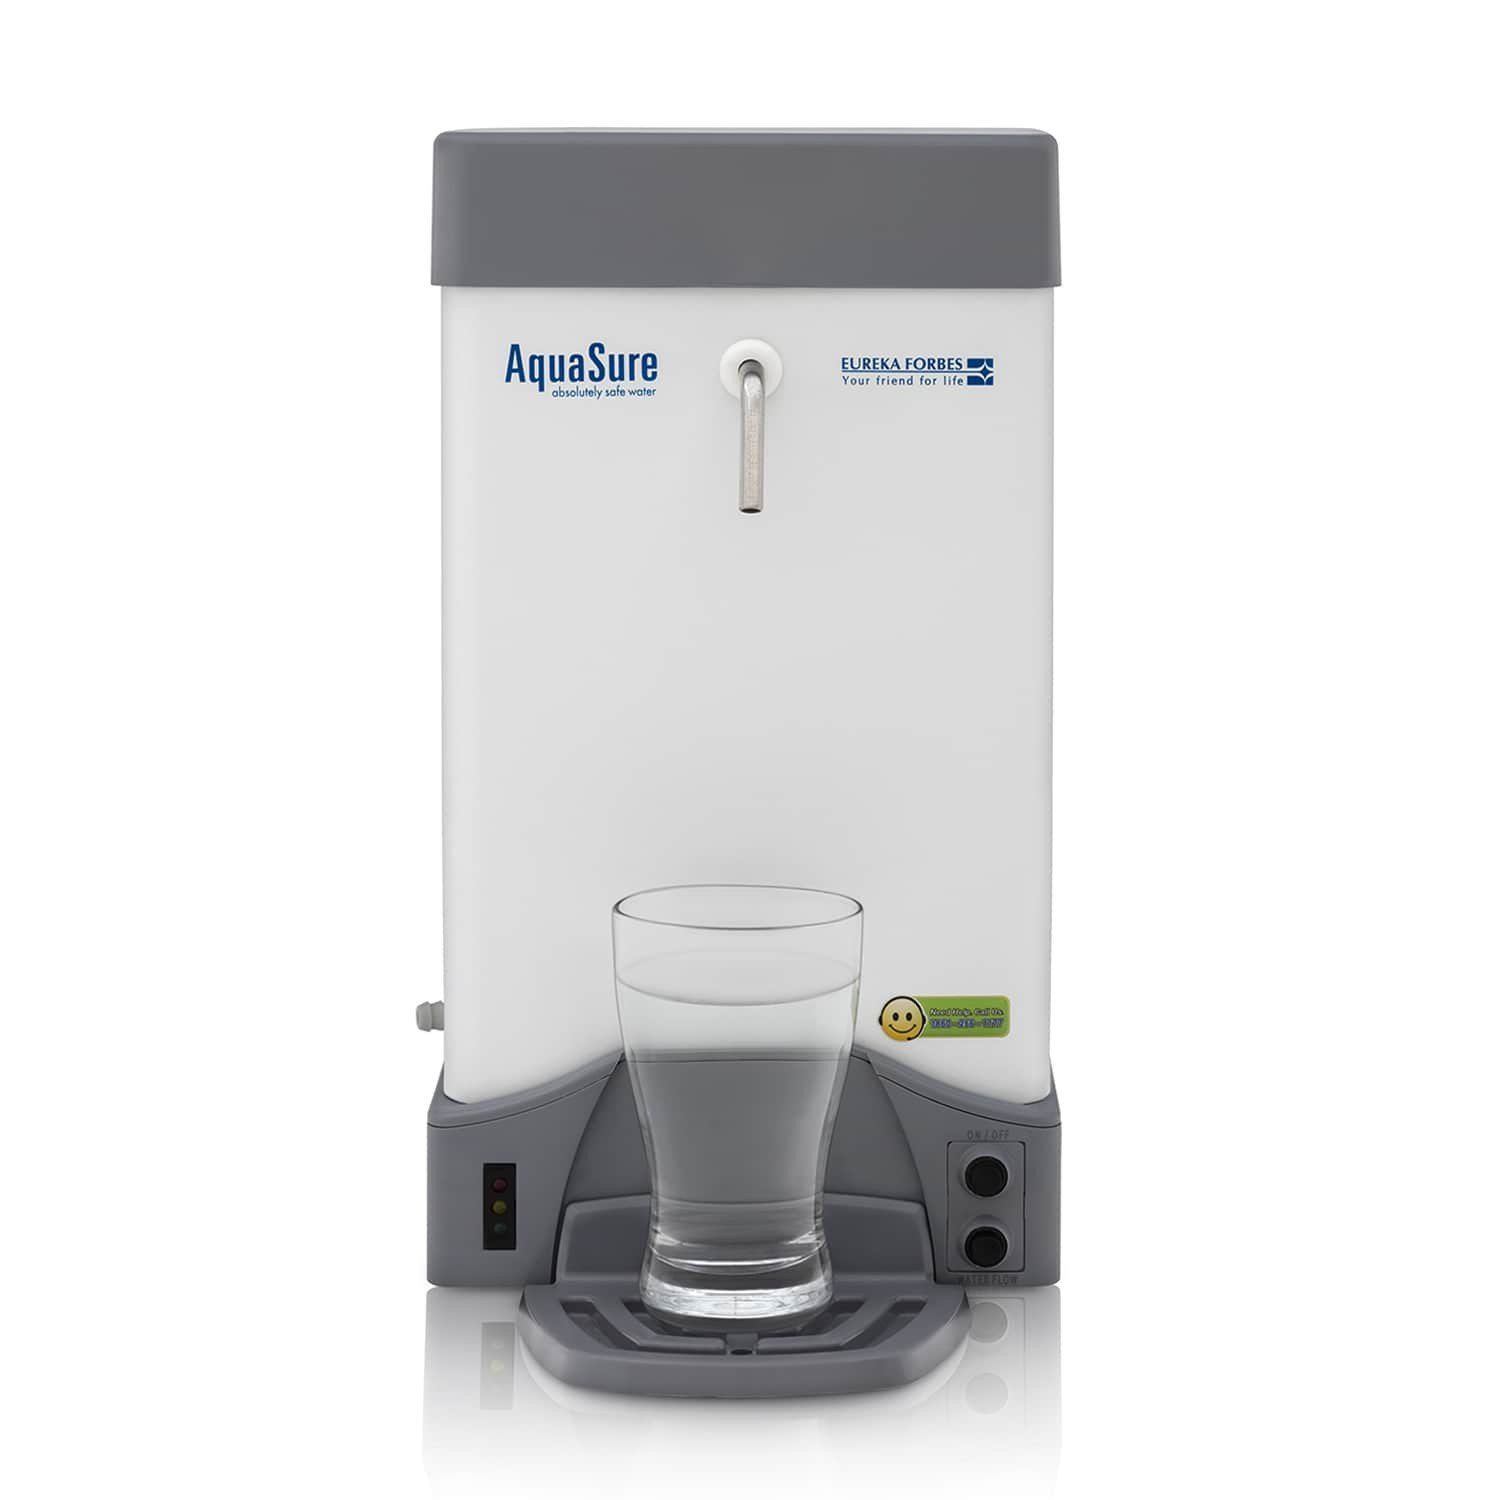 10 Best Water Purifiers below ₹10000 in India 2019 - Reviews & Buyer's Guide 1